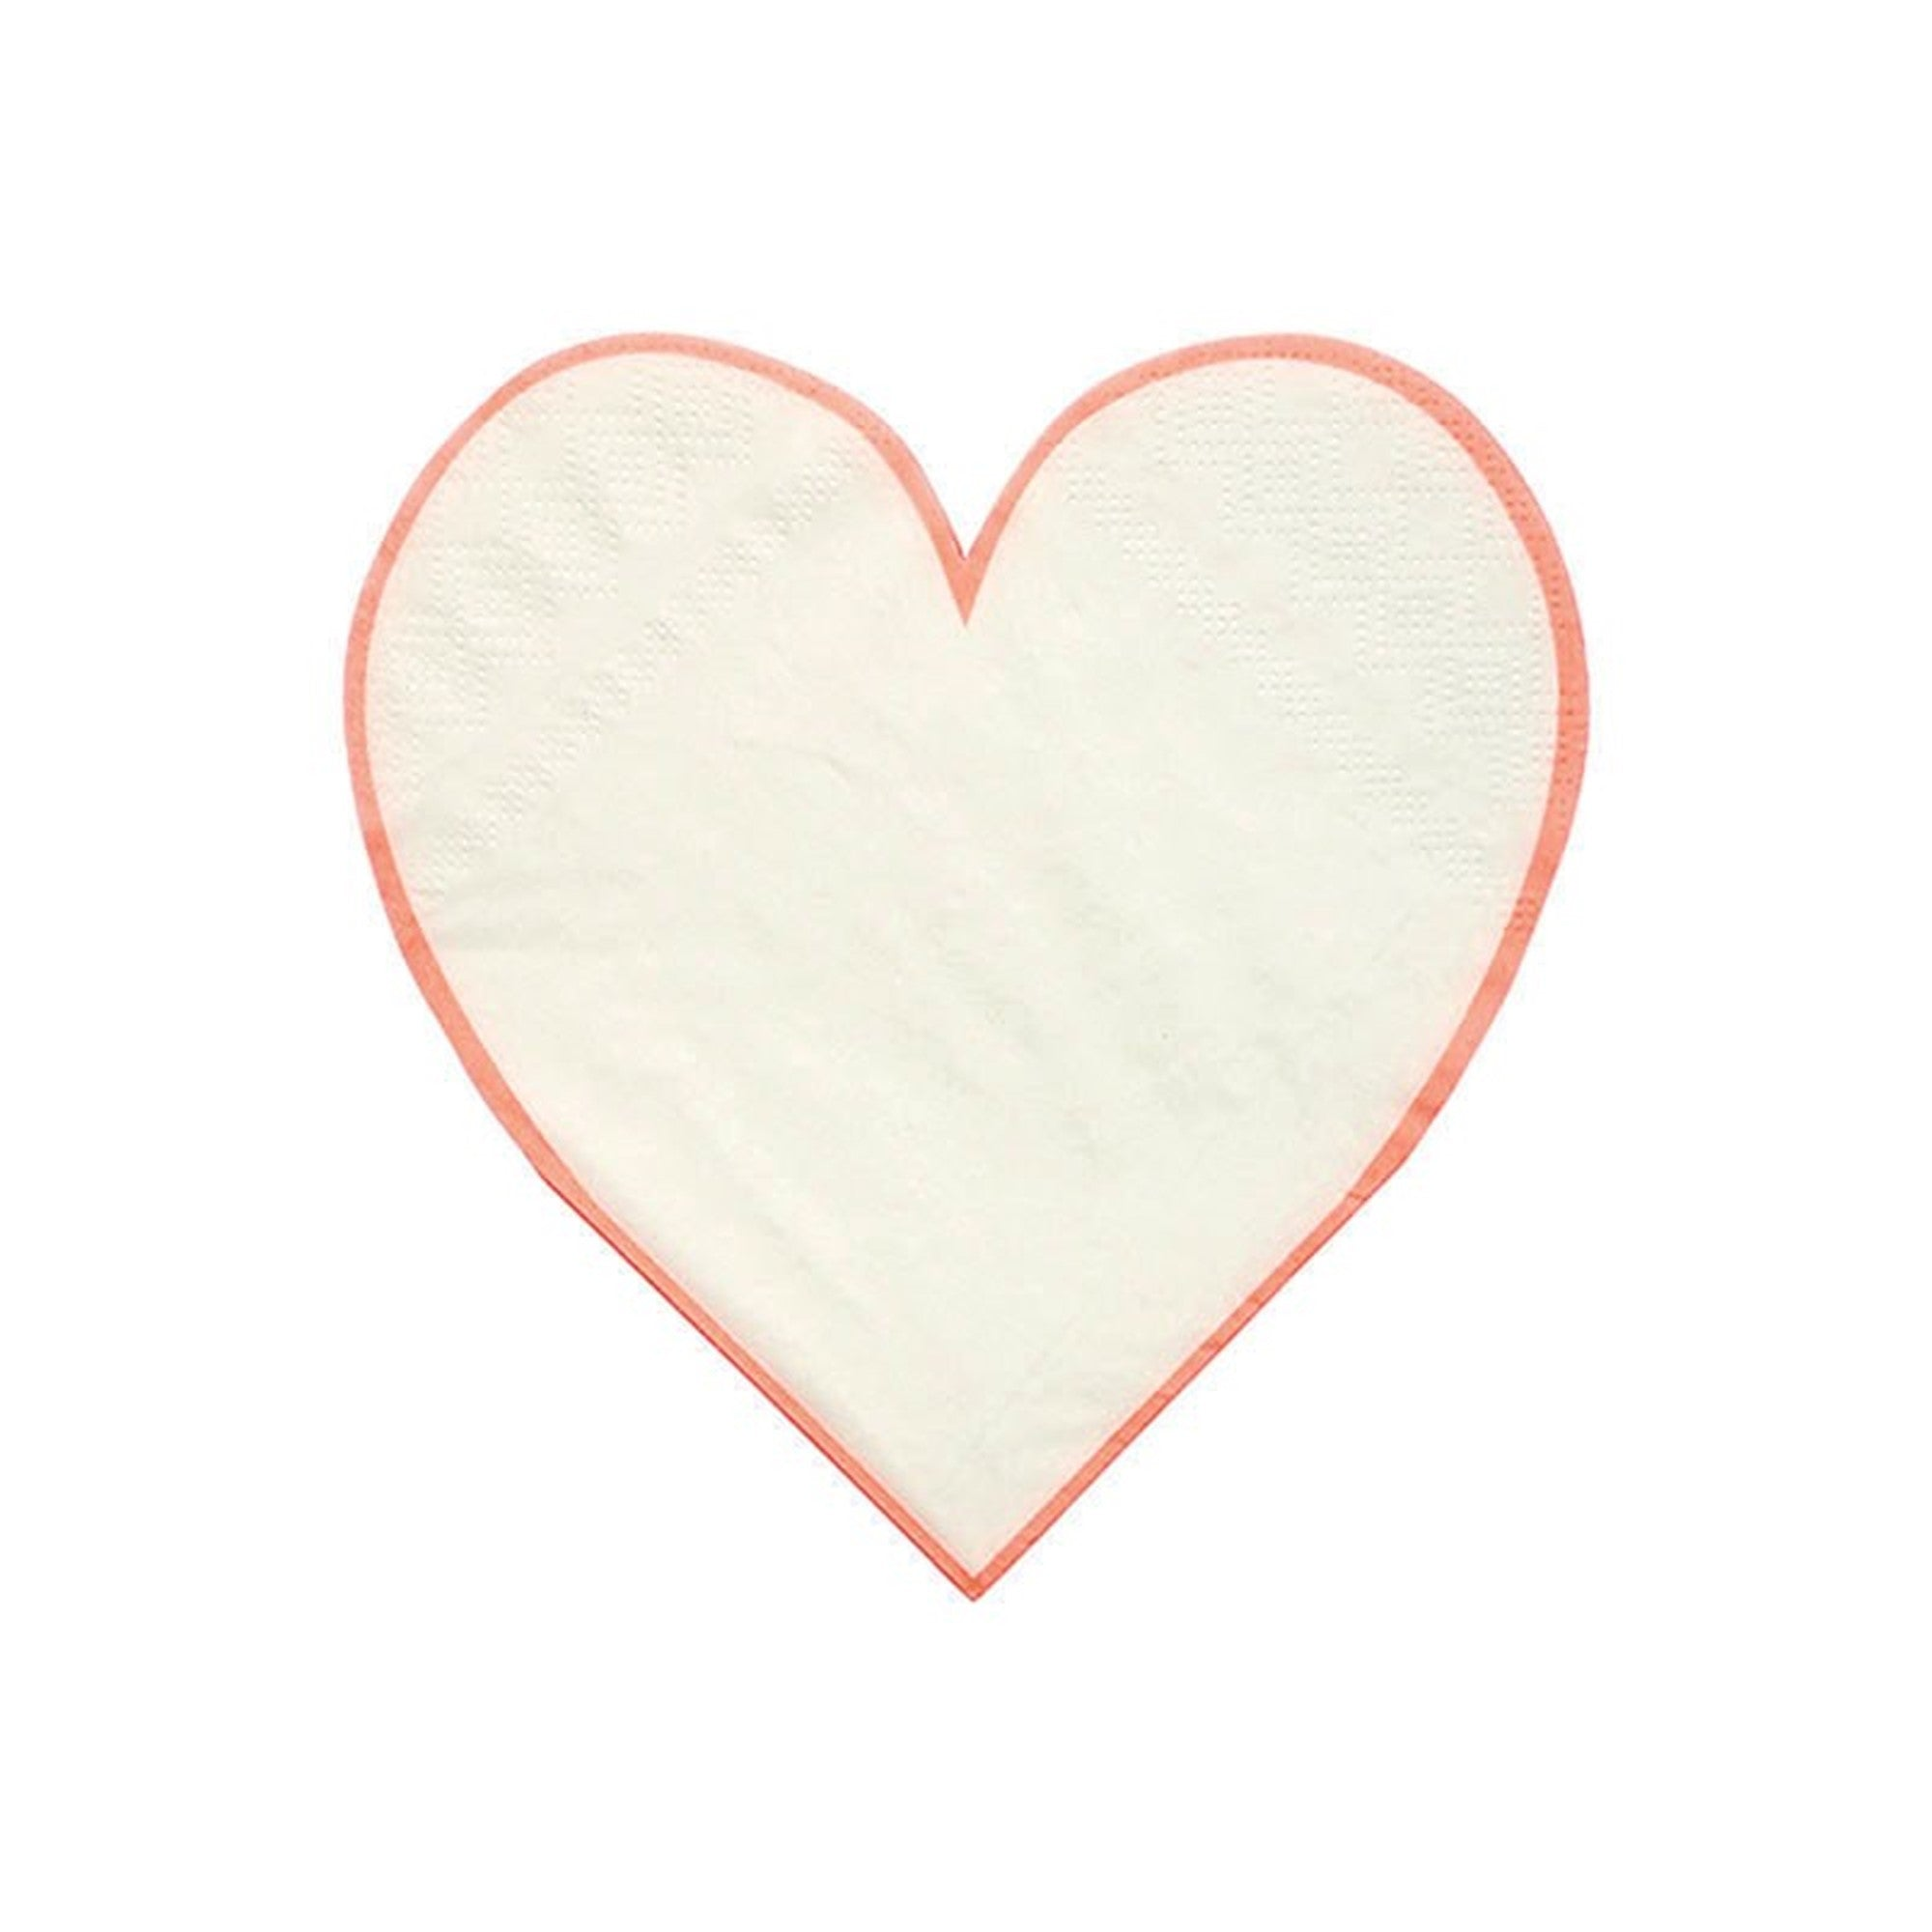 Meri Meri Coral Outline Heart Paper Napkin, MM-Meri Meri UK, Putti Fine Furnishings